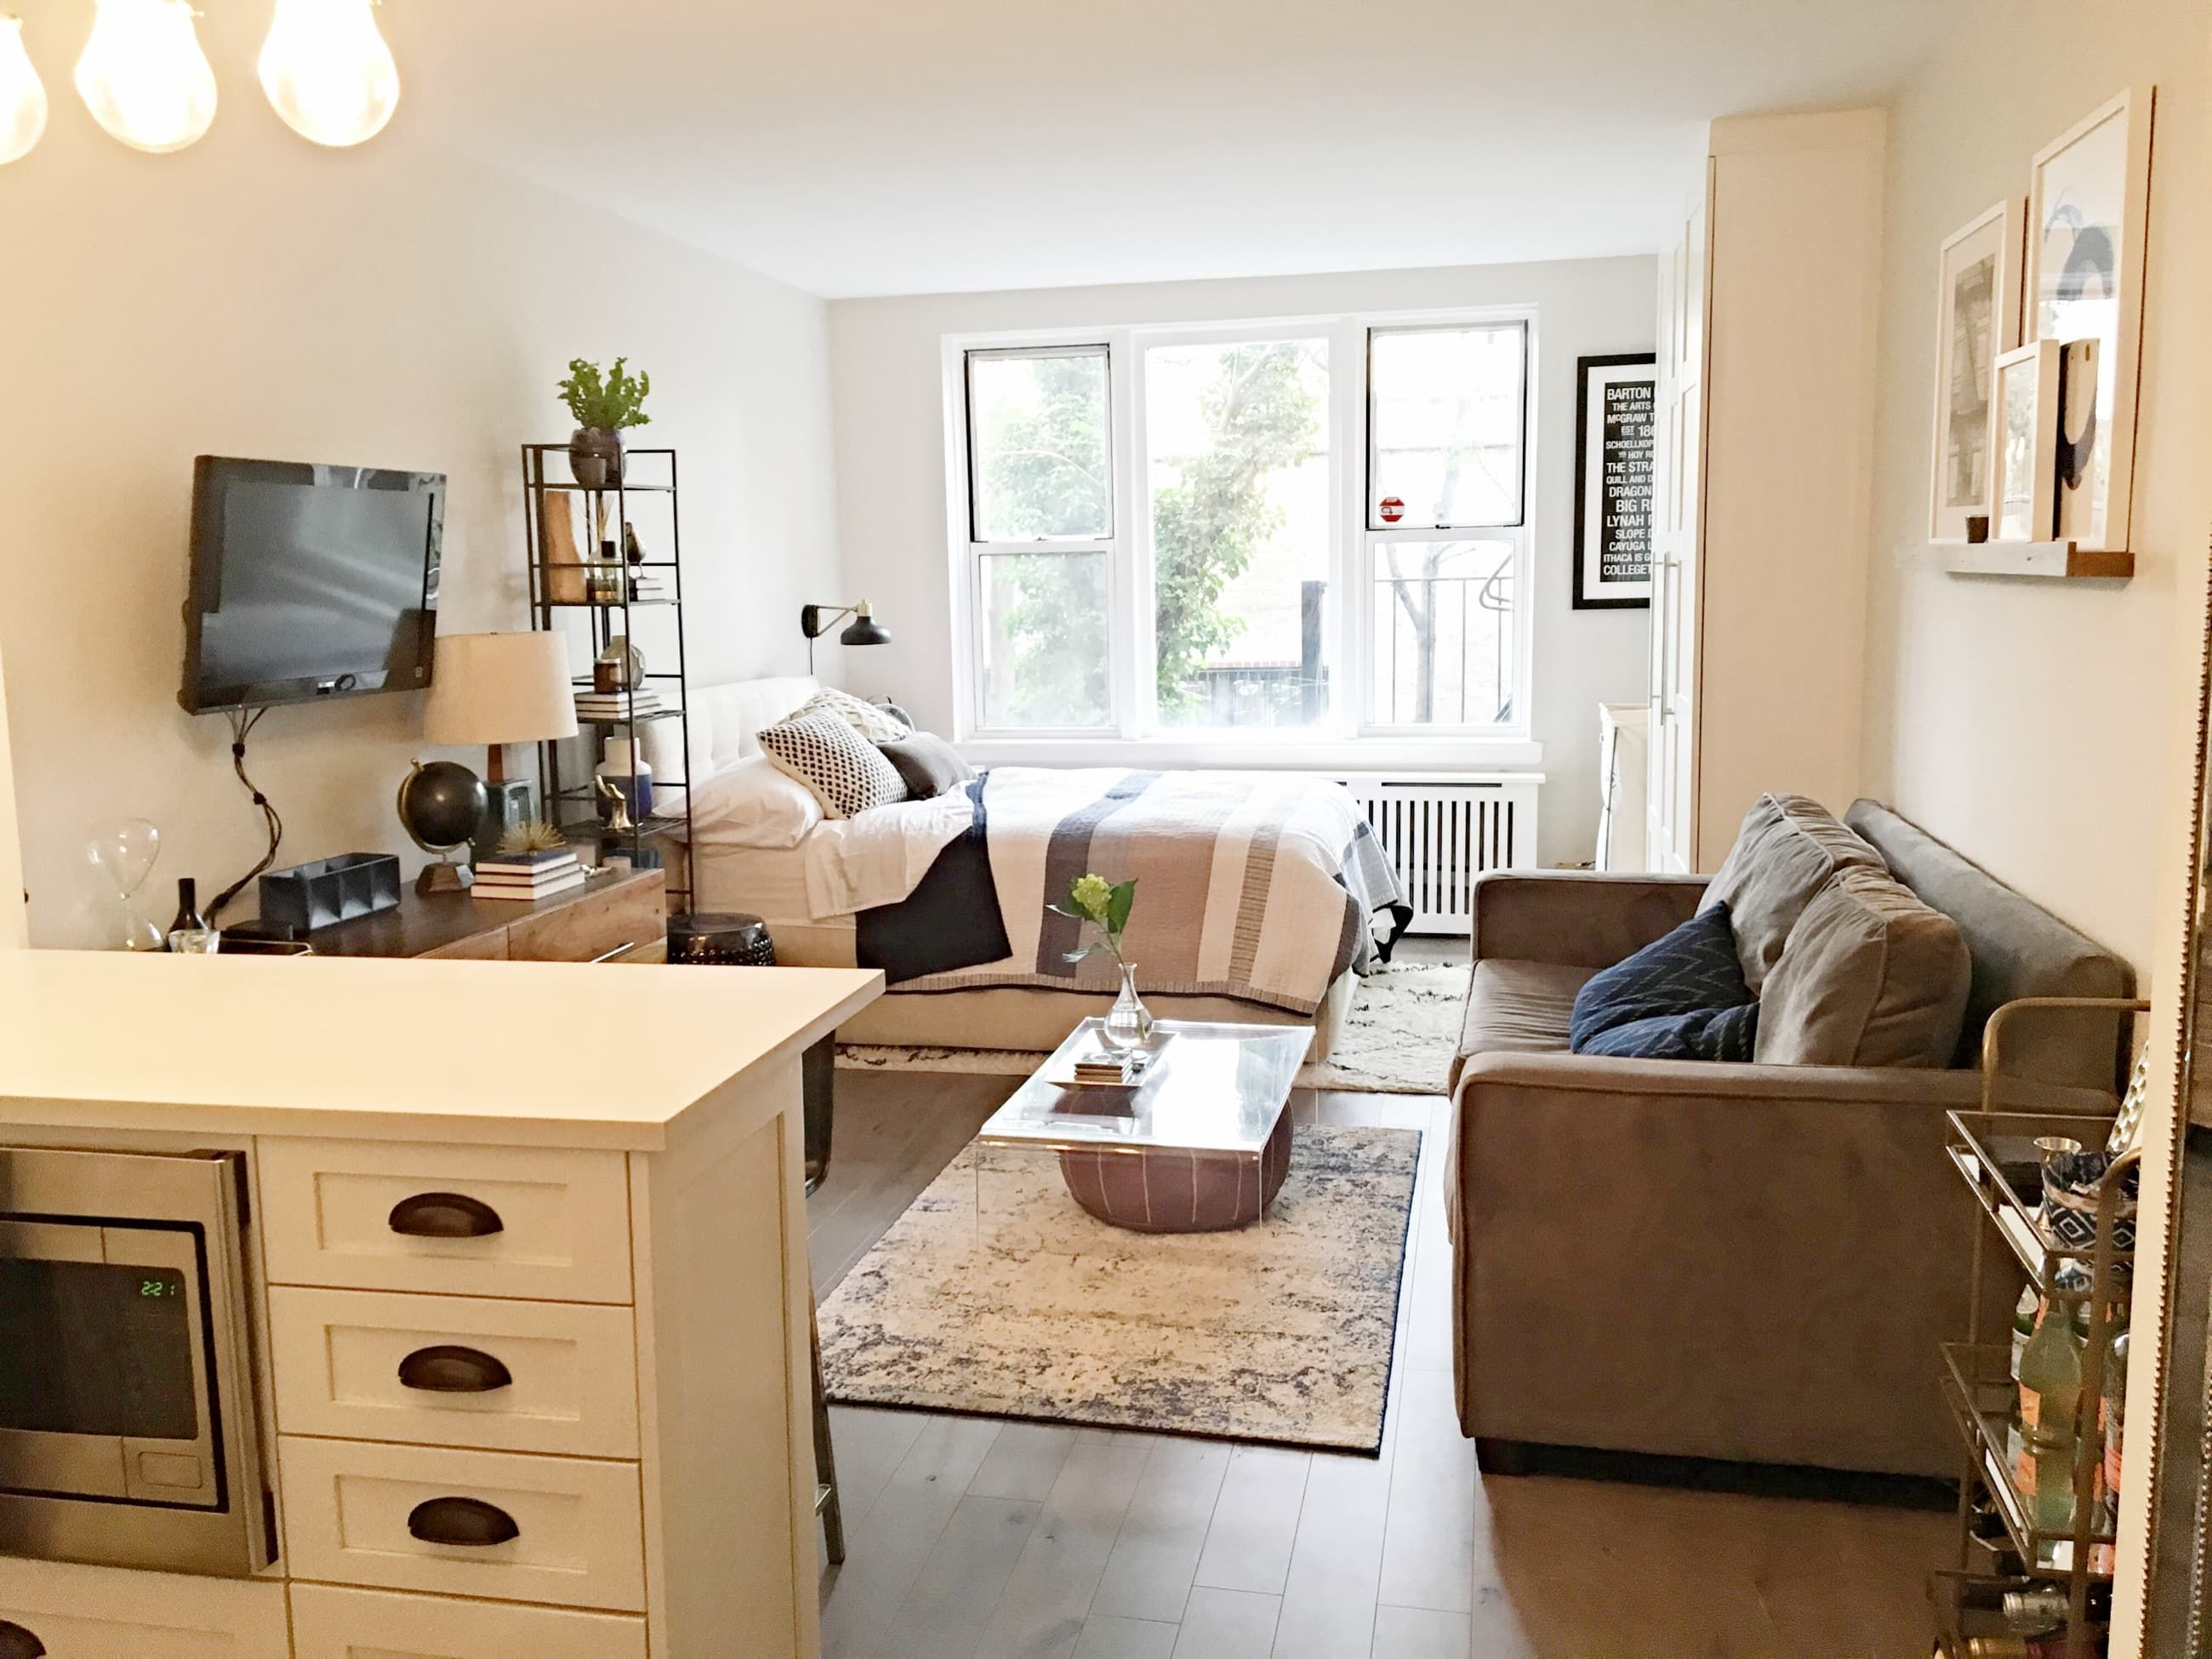 Small Apartment Designs This Complete Studio Makeover Went From Gut To Gorgeous